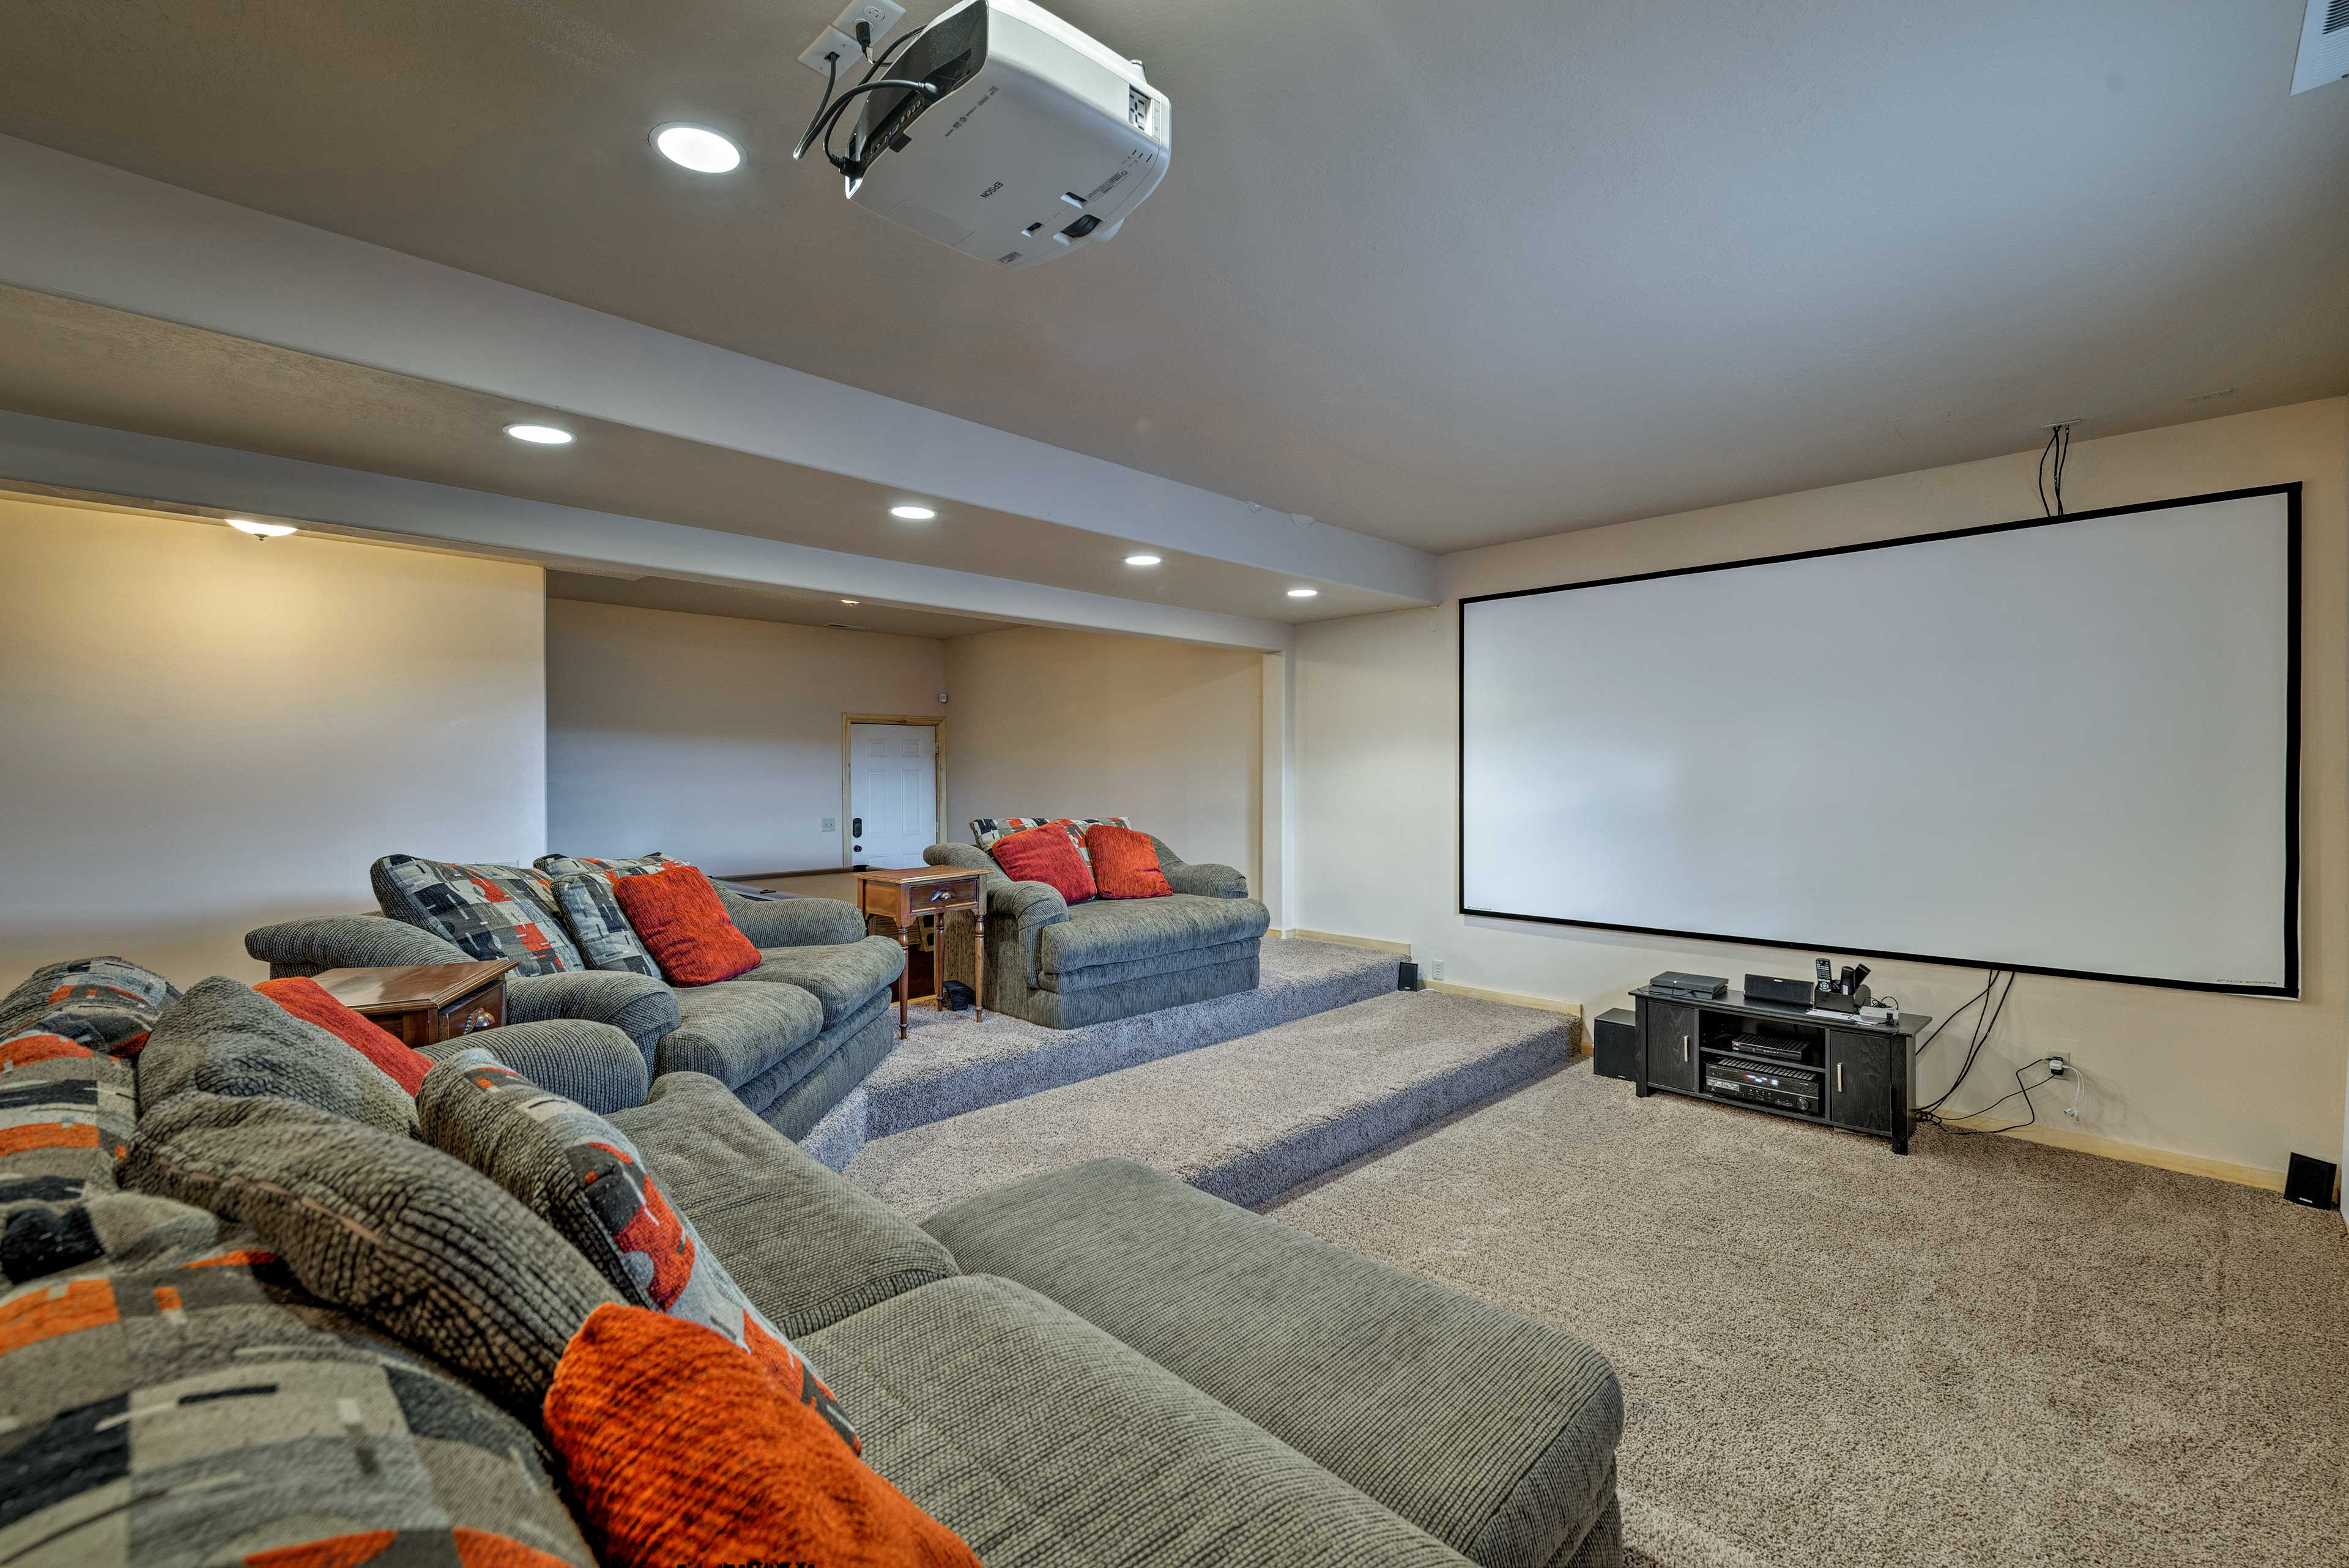 Turn a movie on the big projection screen in the basement.